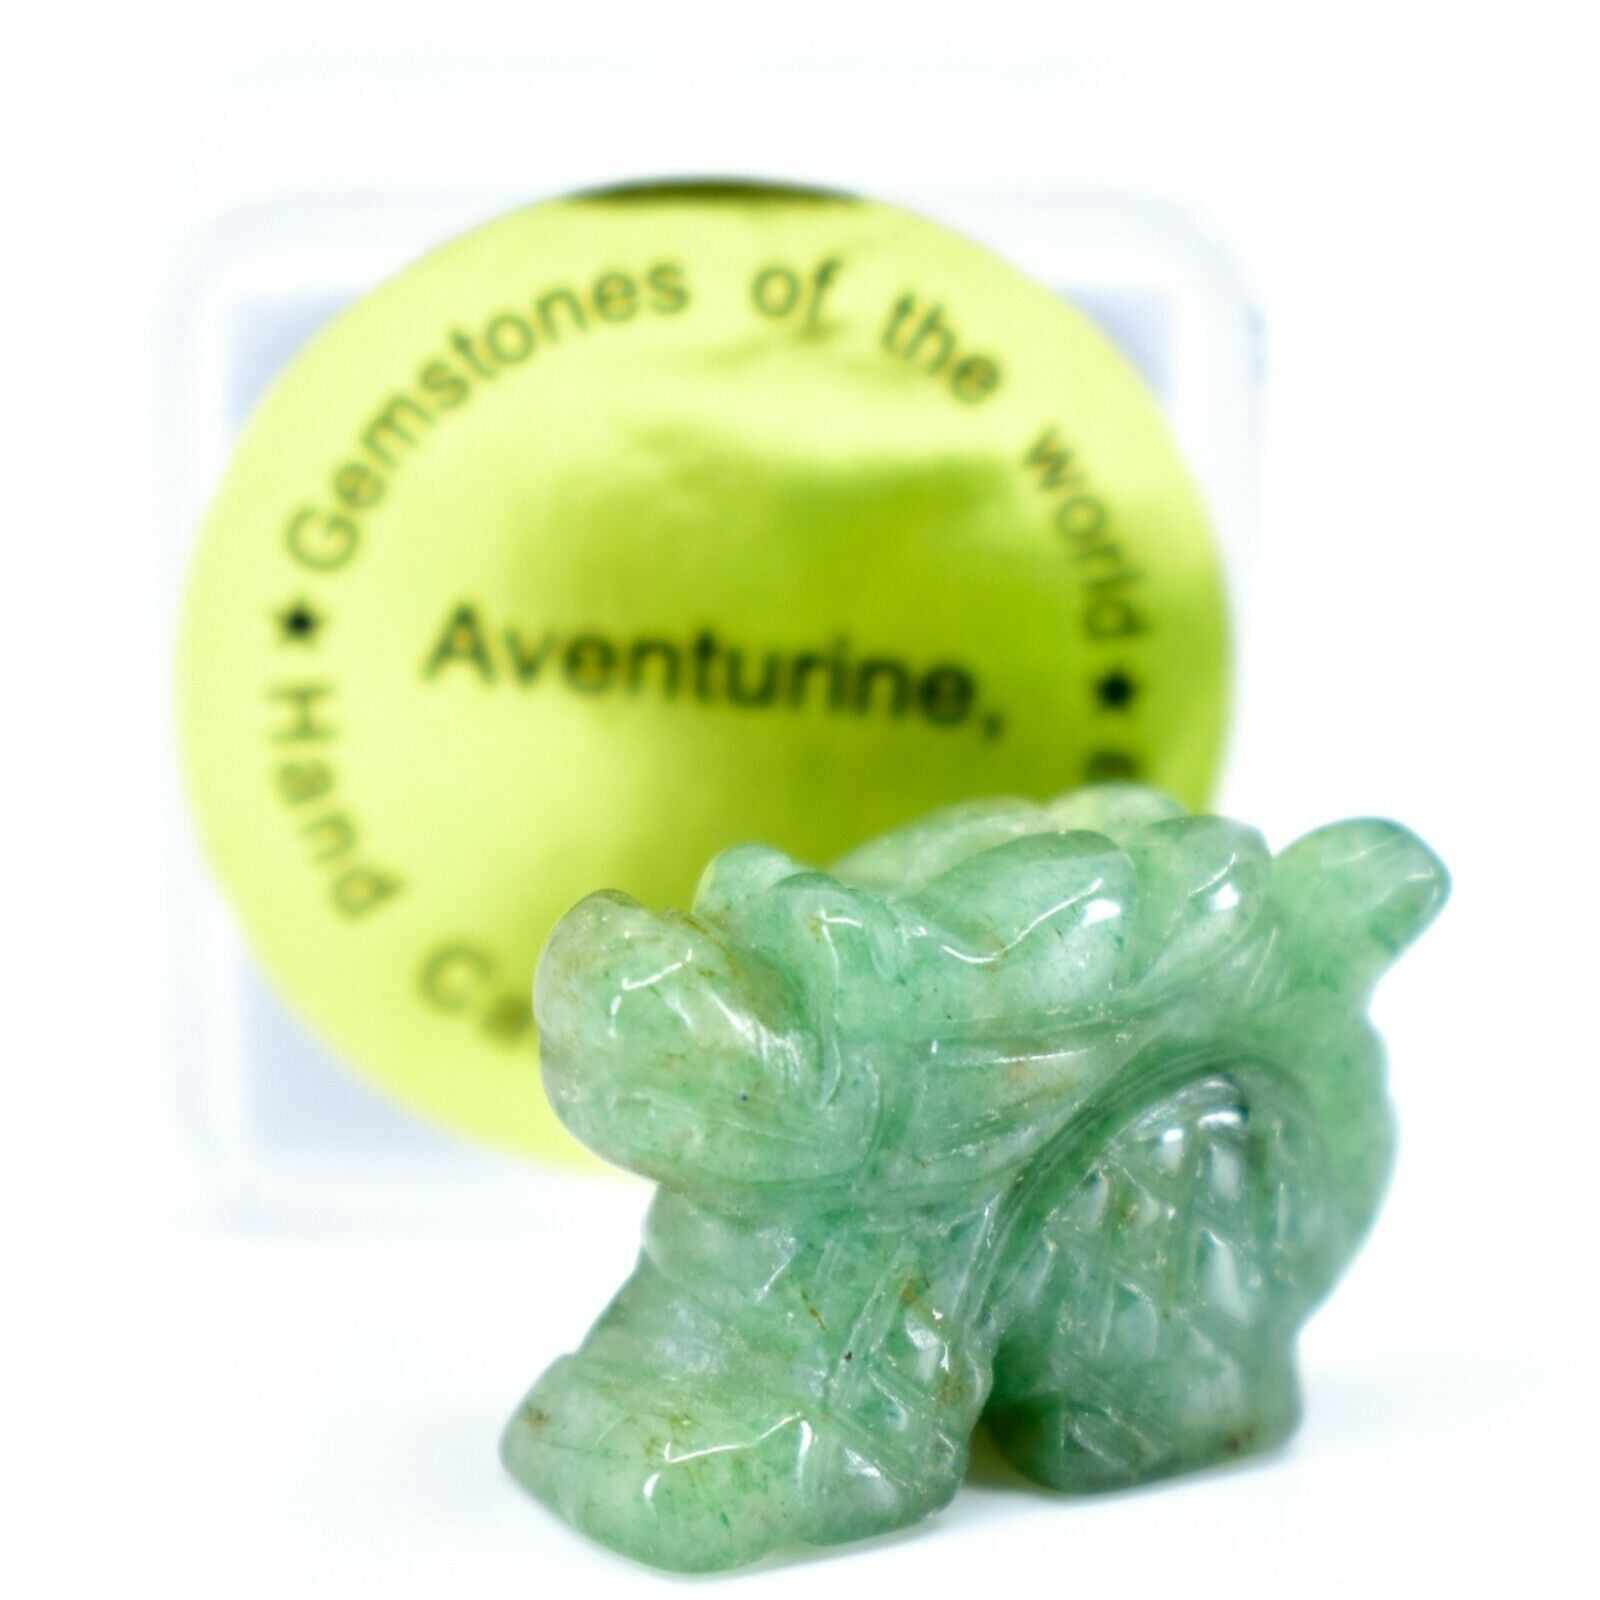 Aventurine Quartz Gemstone Tiny Miniature Dragon Figurine Hand Carved in China